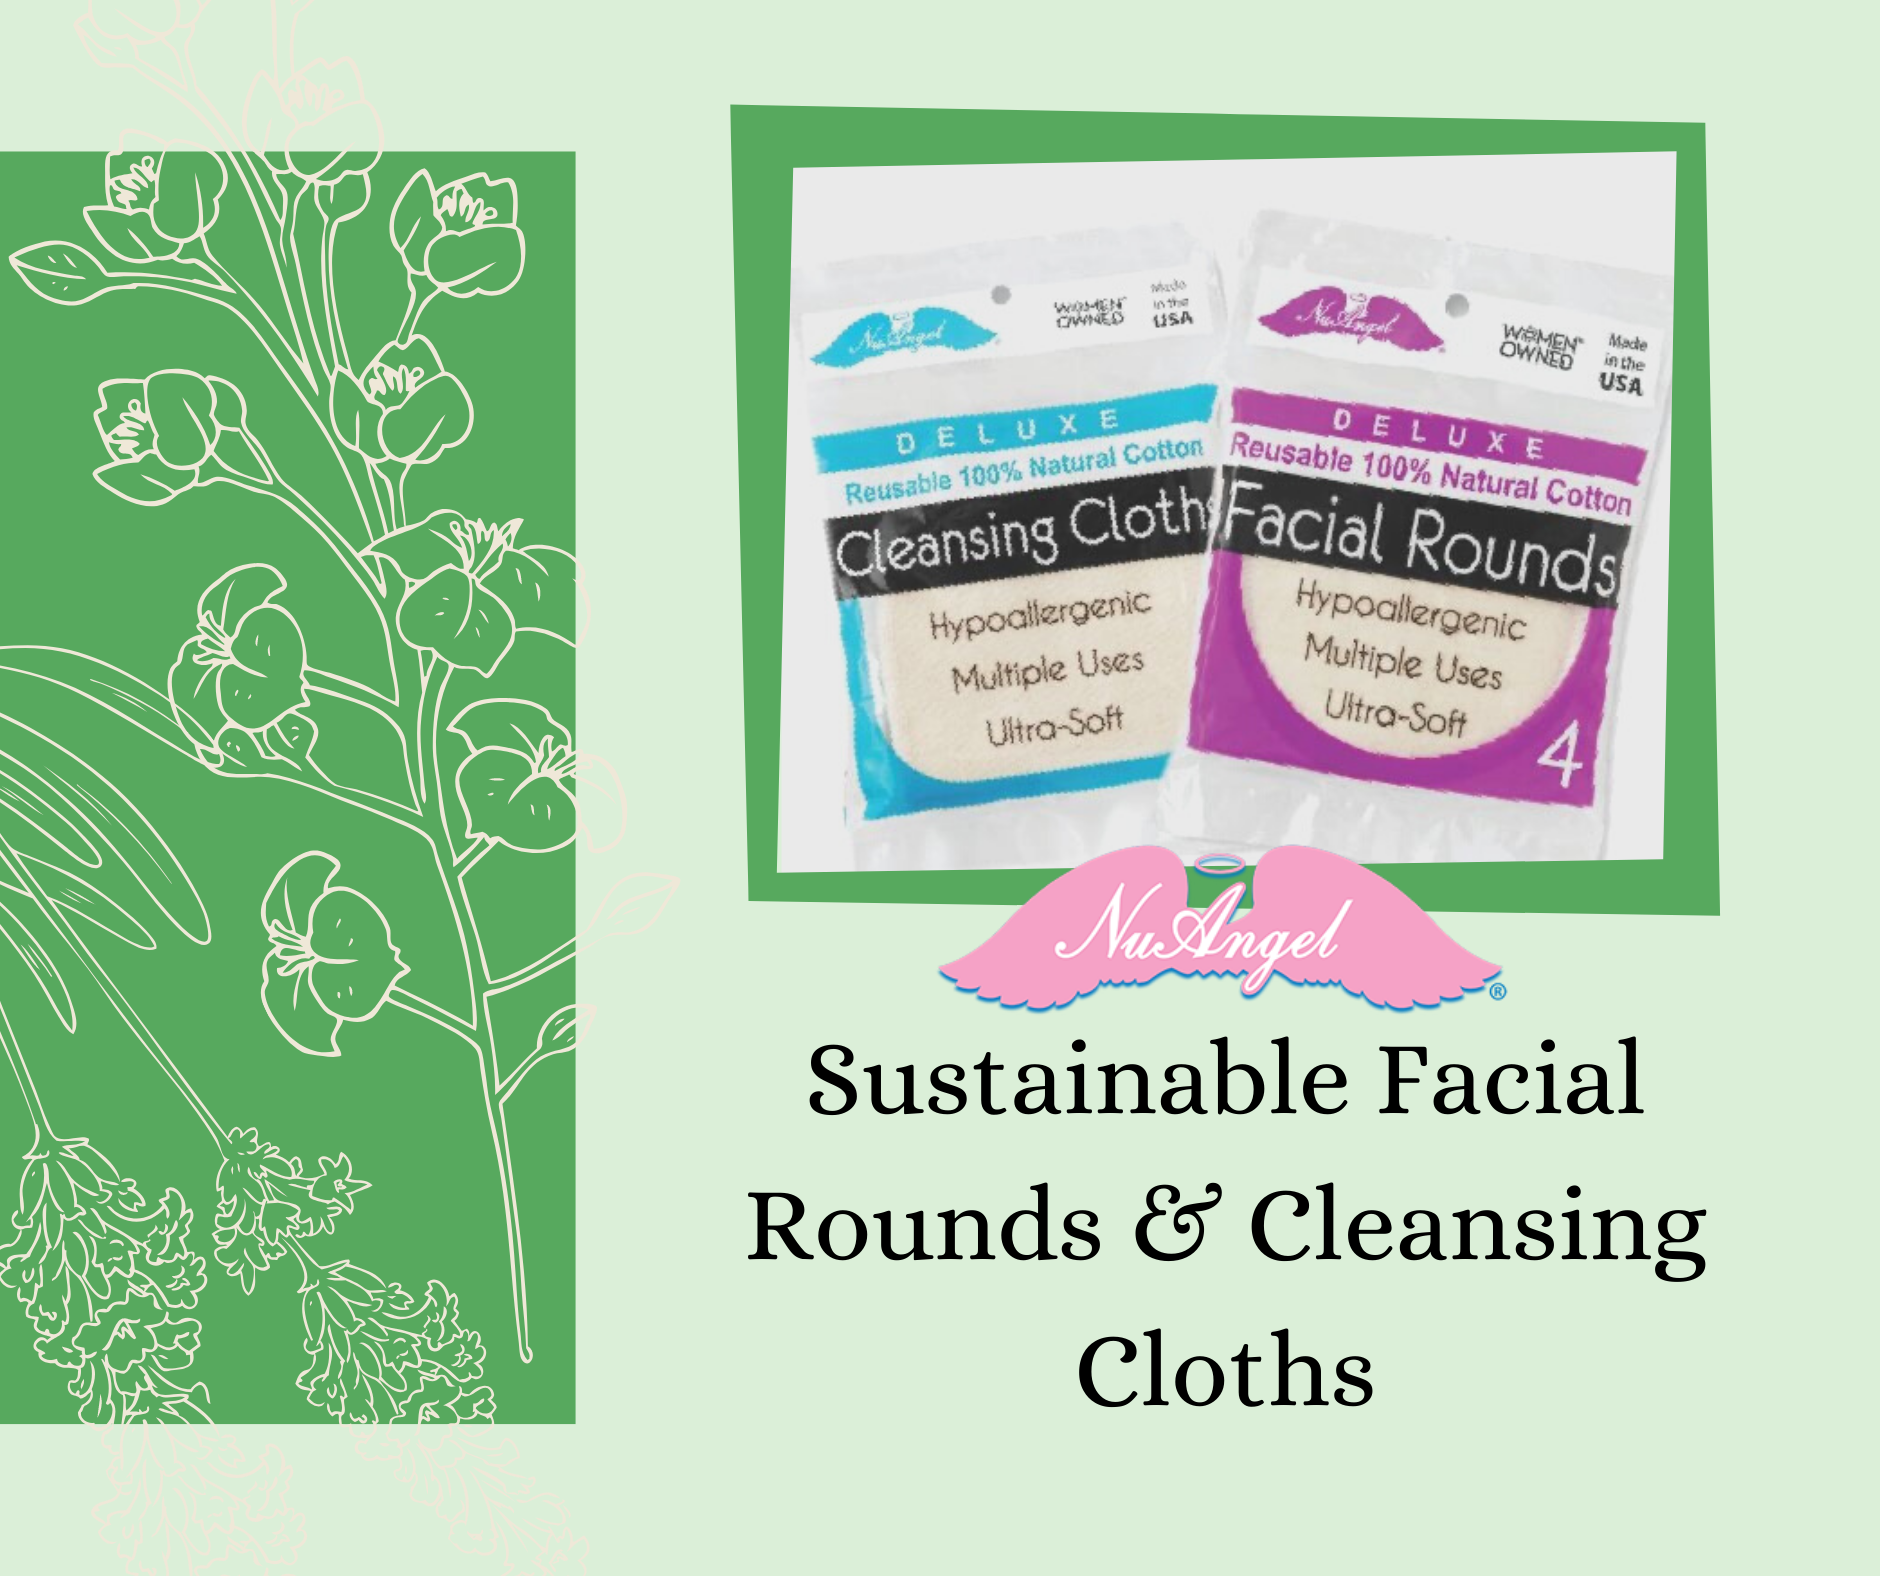 Sustainable Facial Rounds and Cleansing Cloths